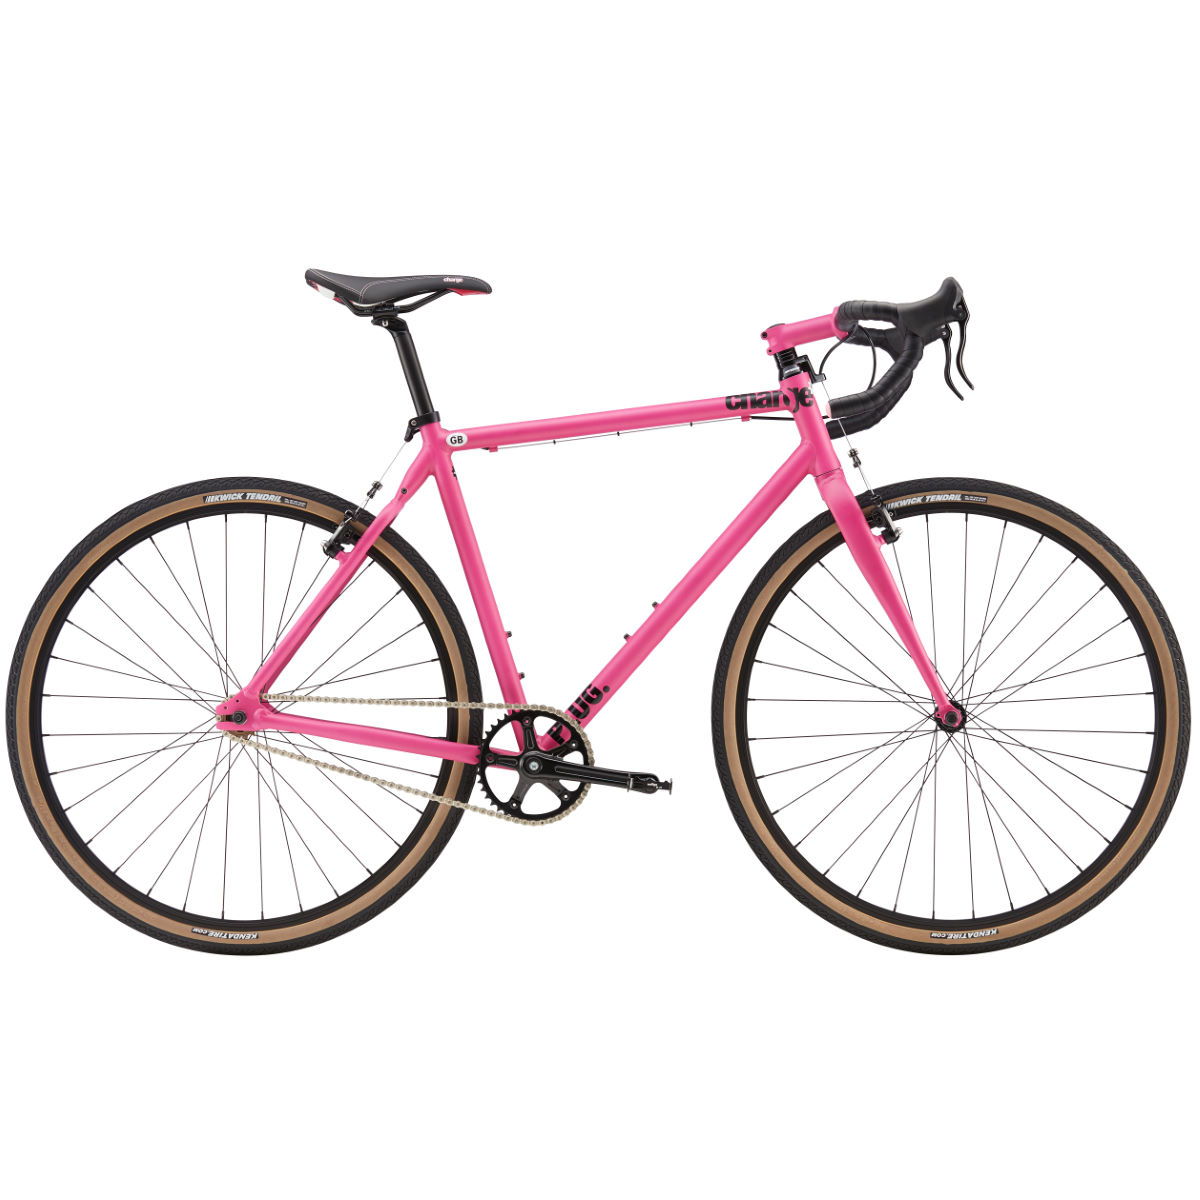 Vélo single-speed Charge Plug 1 (2016) - XL Rose Single speed